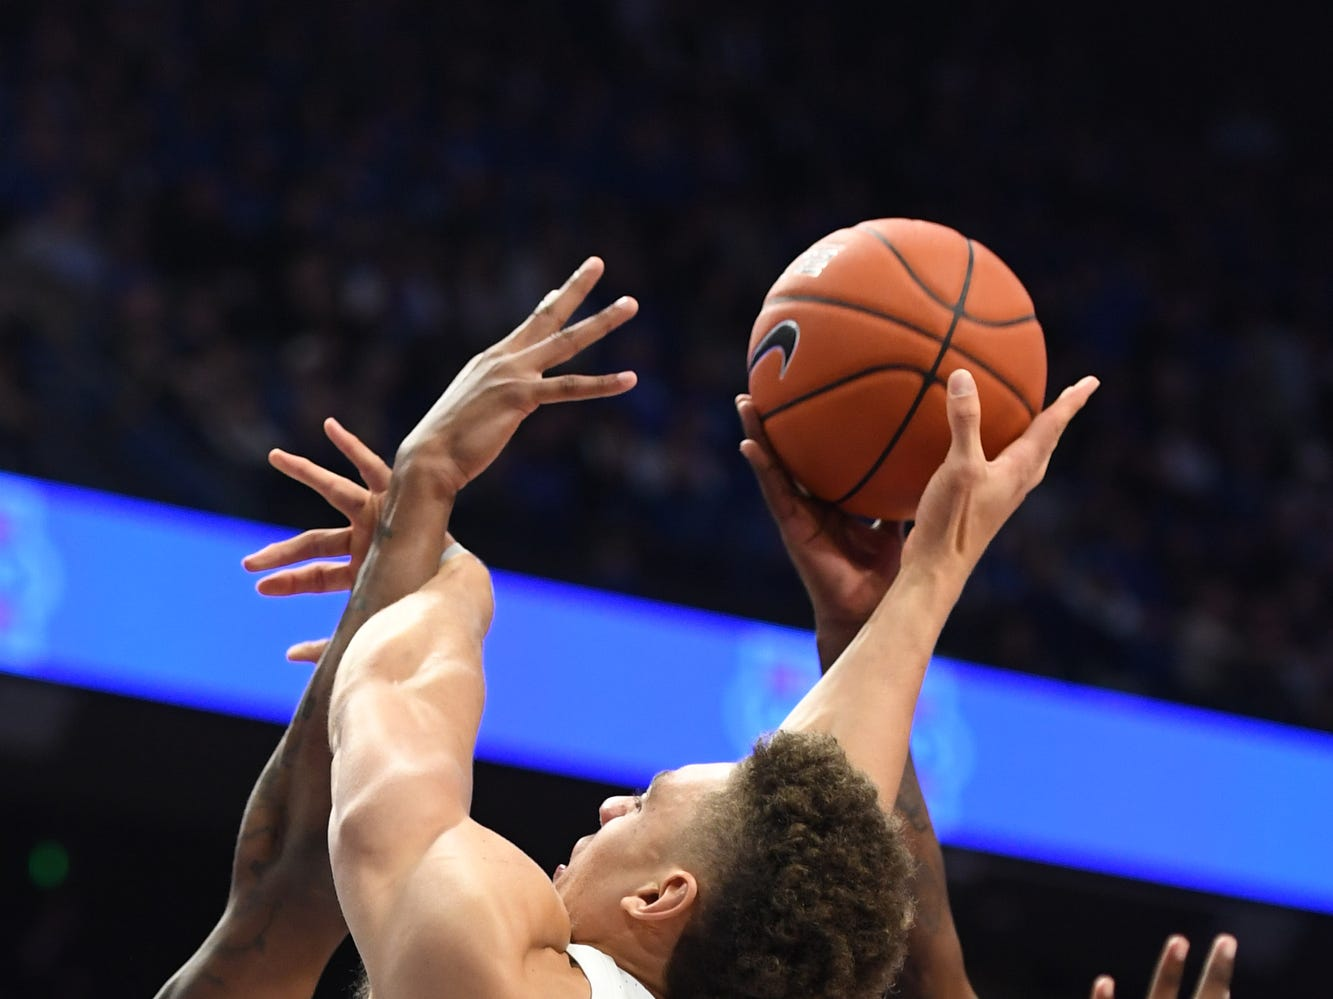 UK R Reid Travis is blocked during the University of Kentucky mens basketball game against Southern Illinois at Rupp Arena in Lexington, Kentucky on Friday, November 9, 2018.